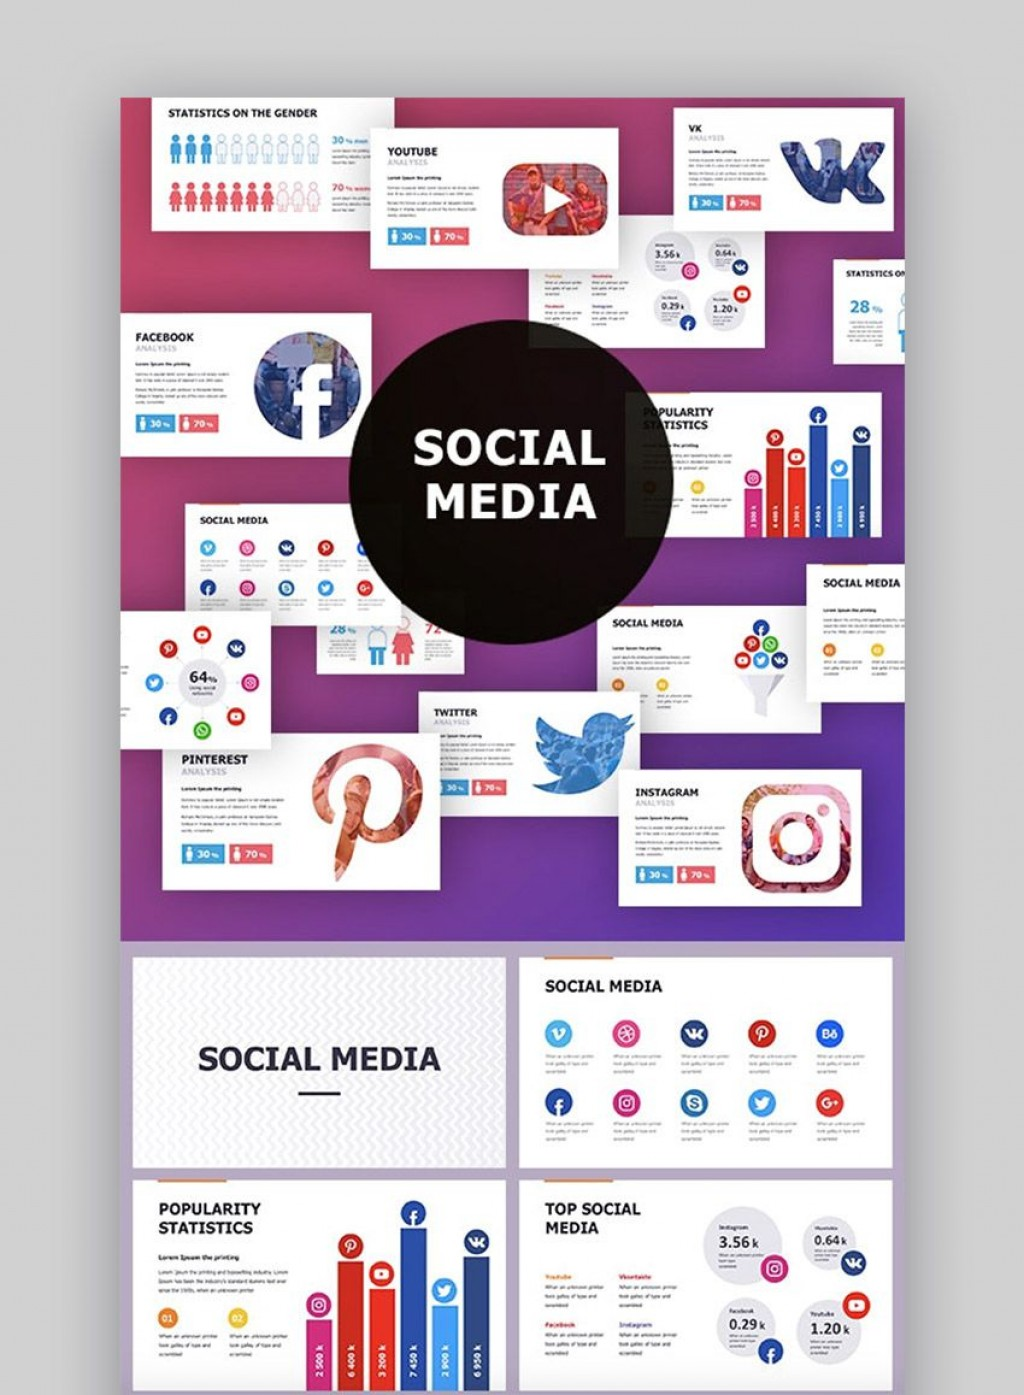 006 Wondrou Social Media Trend 2017  Powerpoint Template Free Image -Large